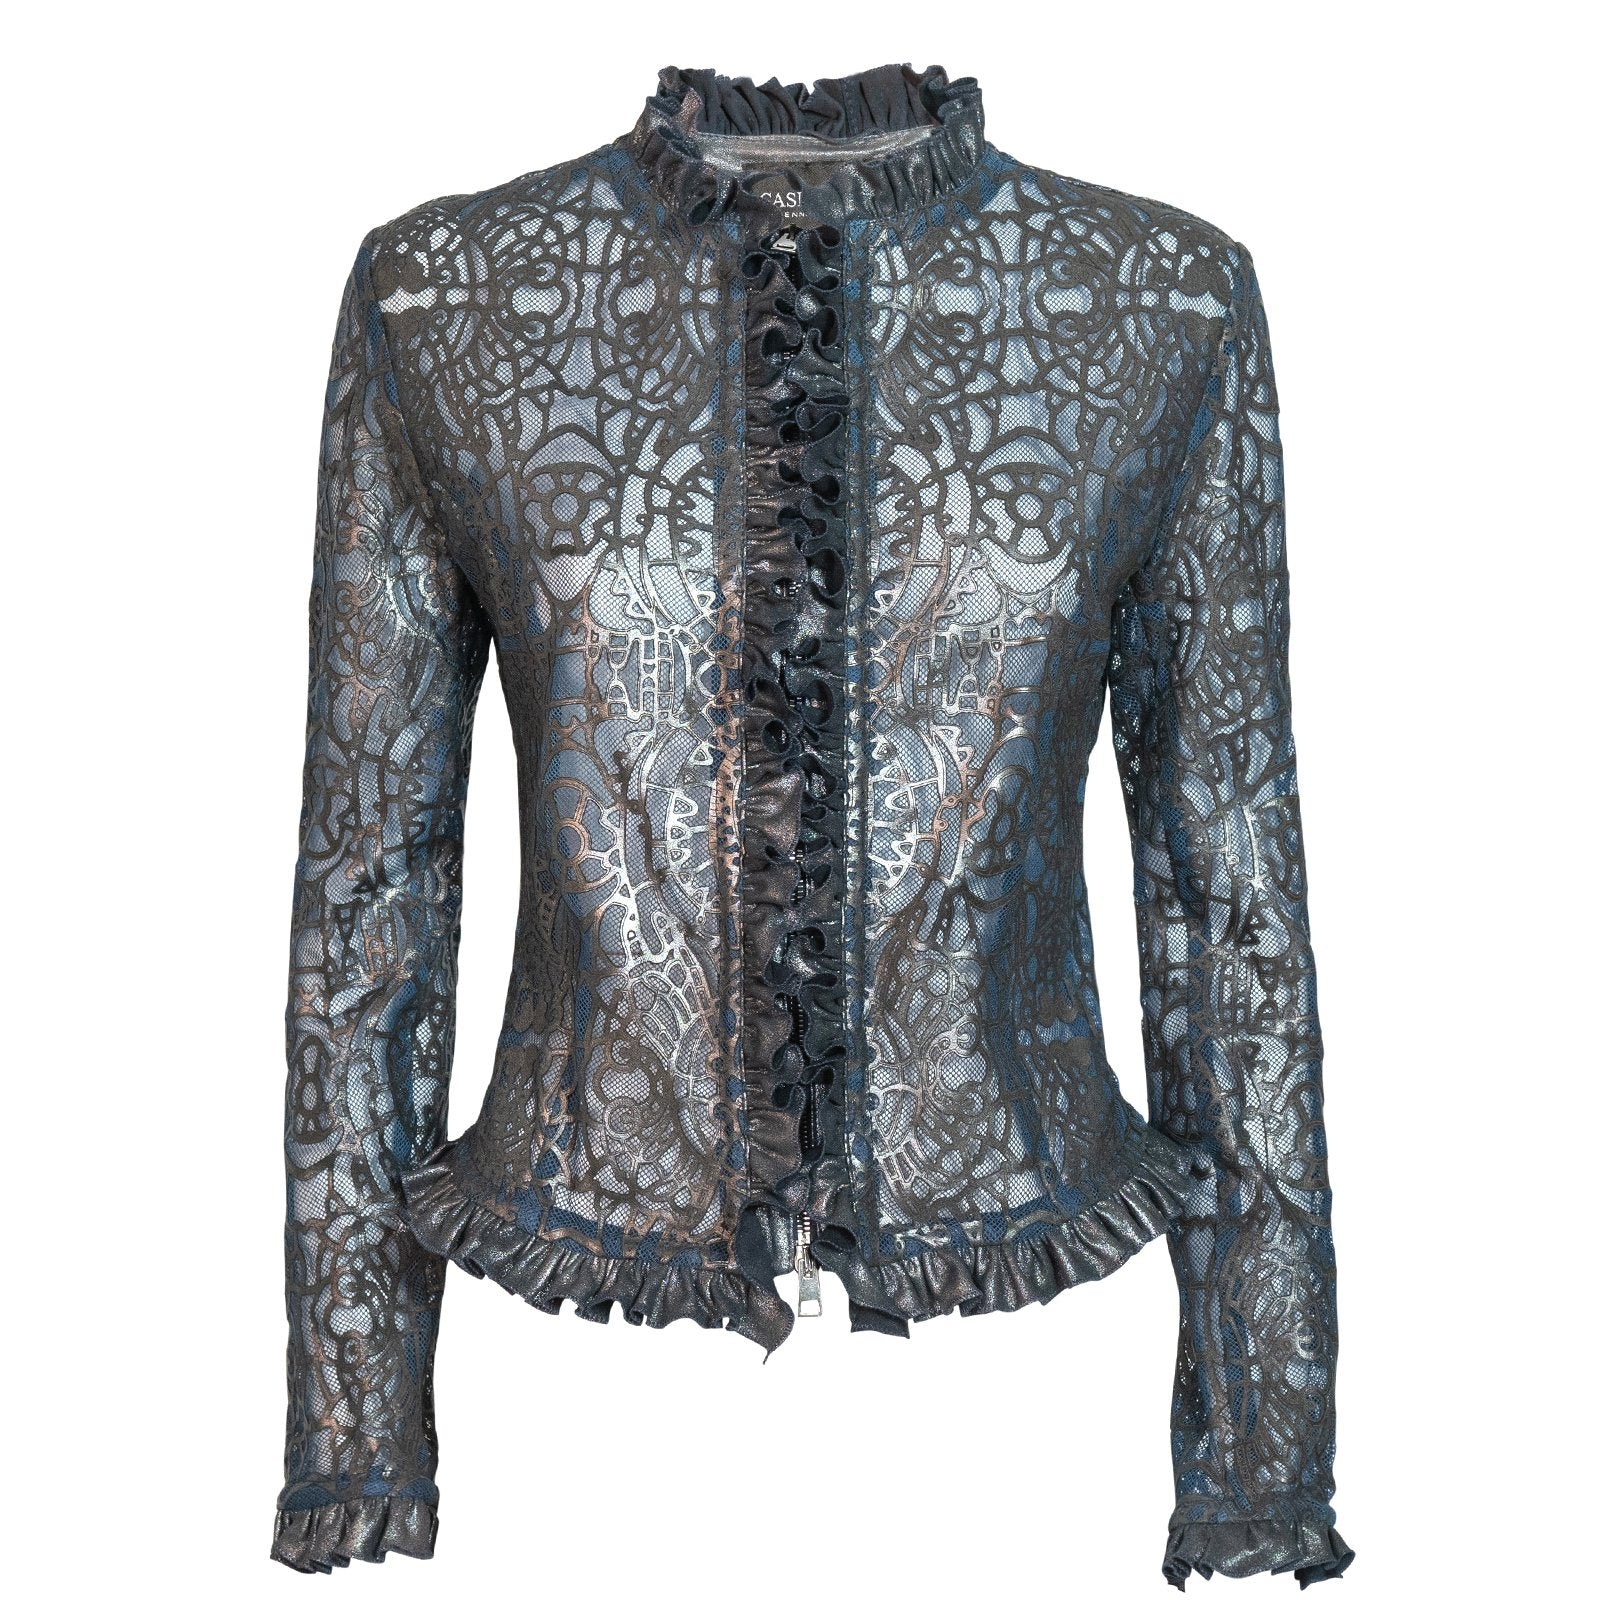 Lasered Net Leather Jacket RUFCOX